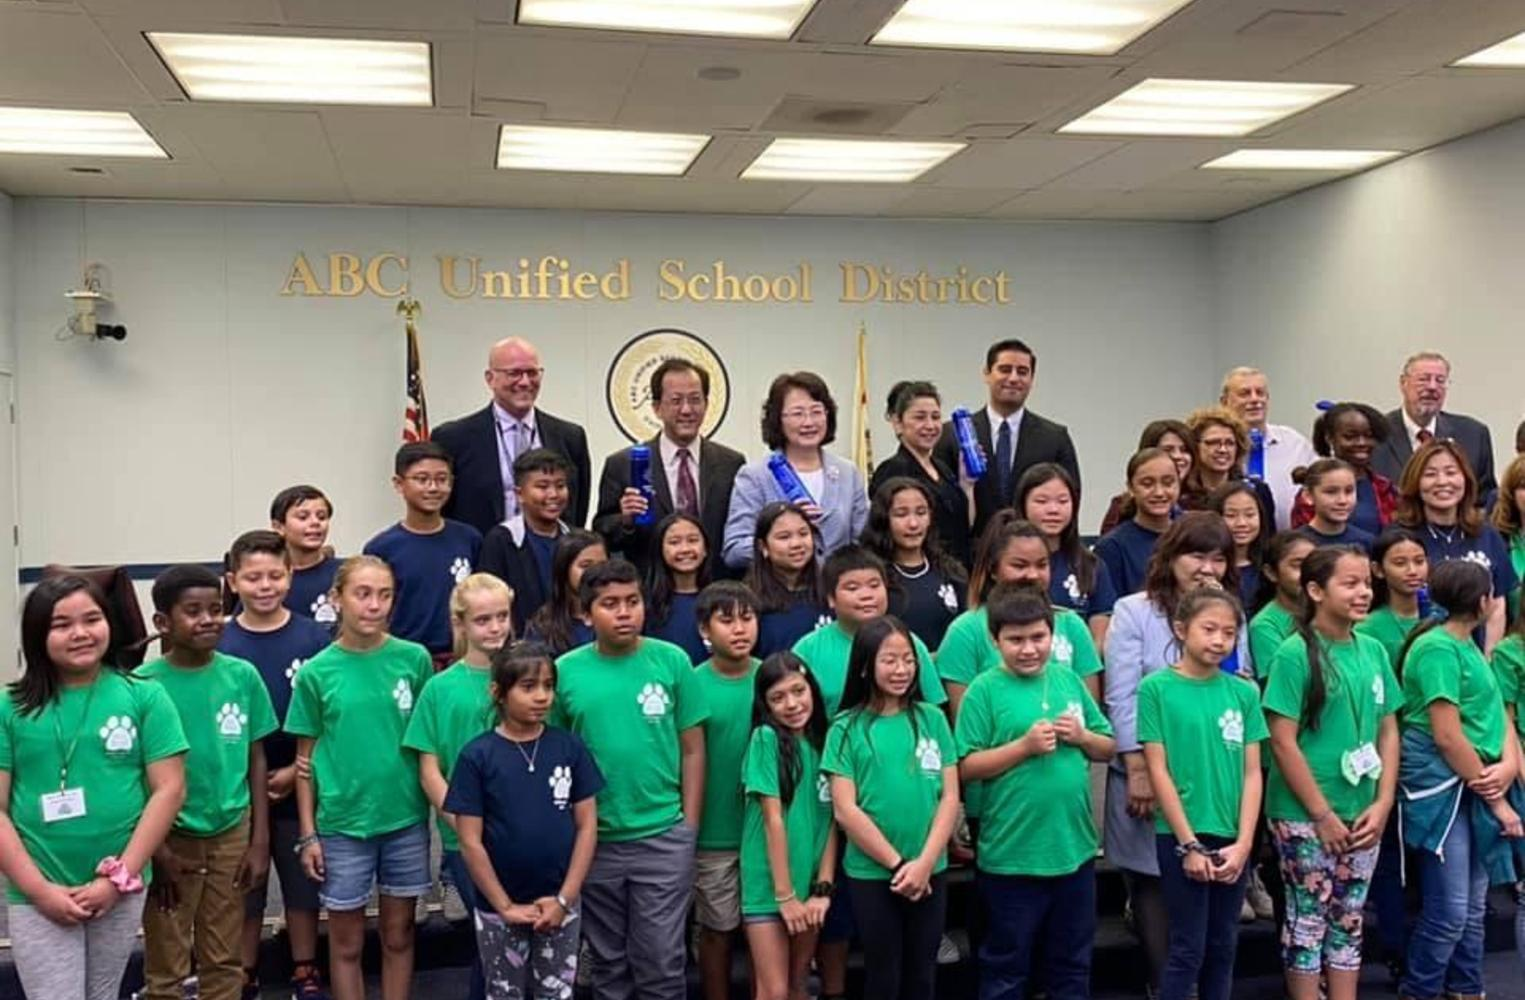 student wearing green tshirts and school board members standing together in front of the united states flag